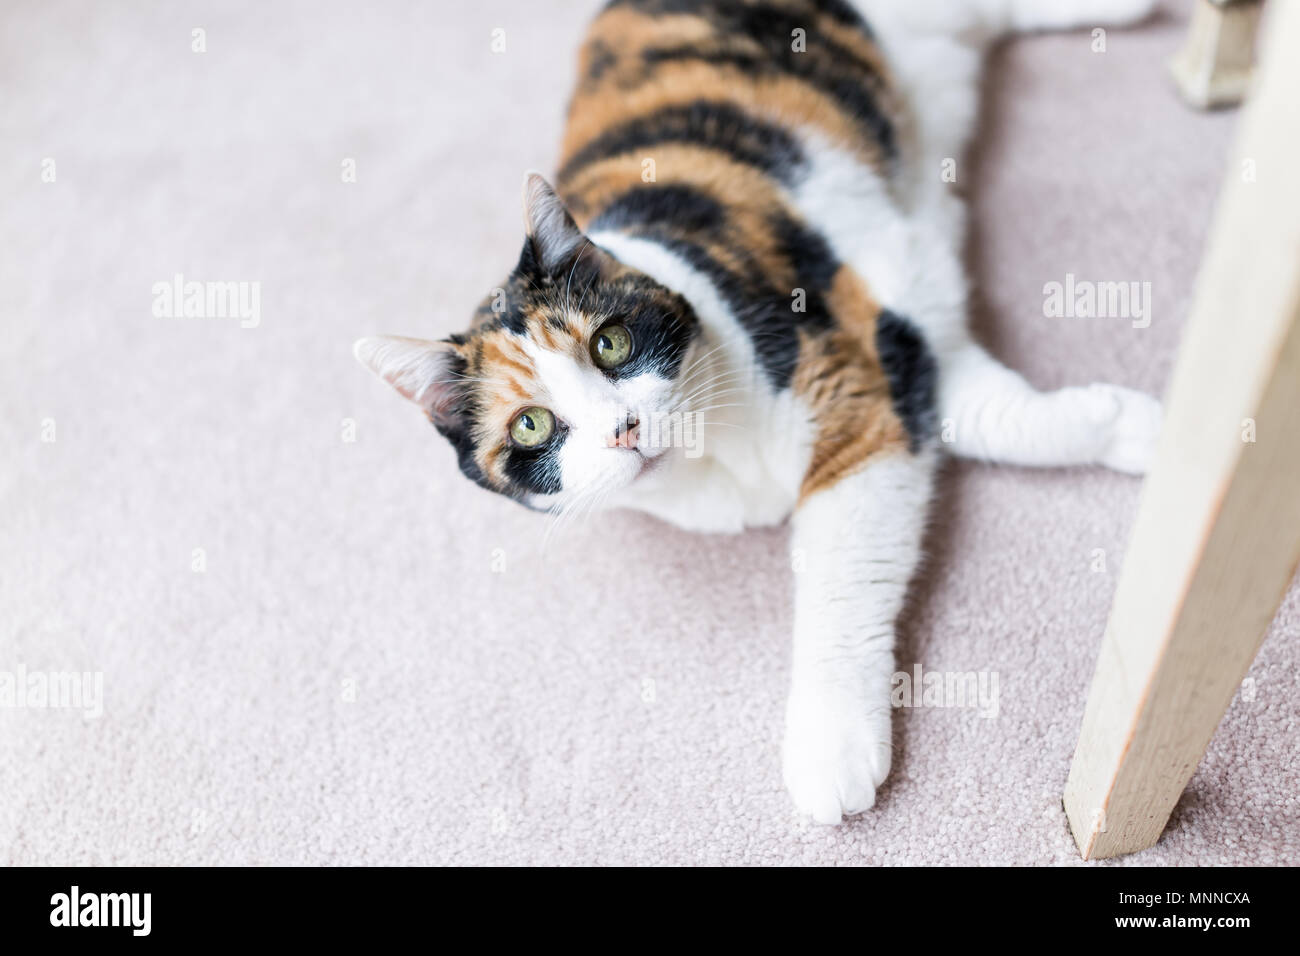 7eccd283a12 Calico cat looking up lying on carpet adorable cute big eyes under table